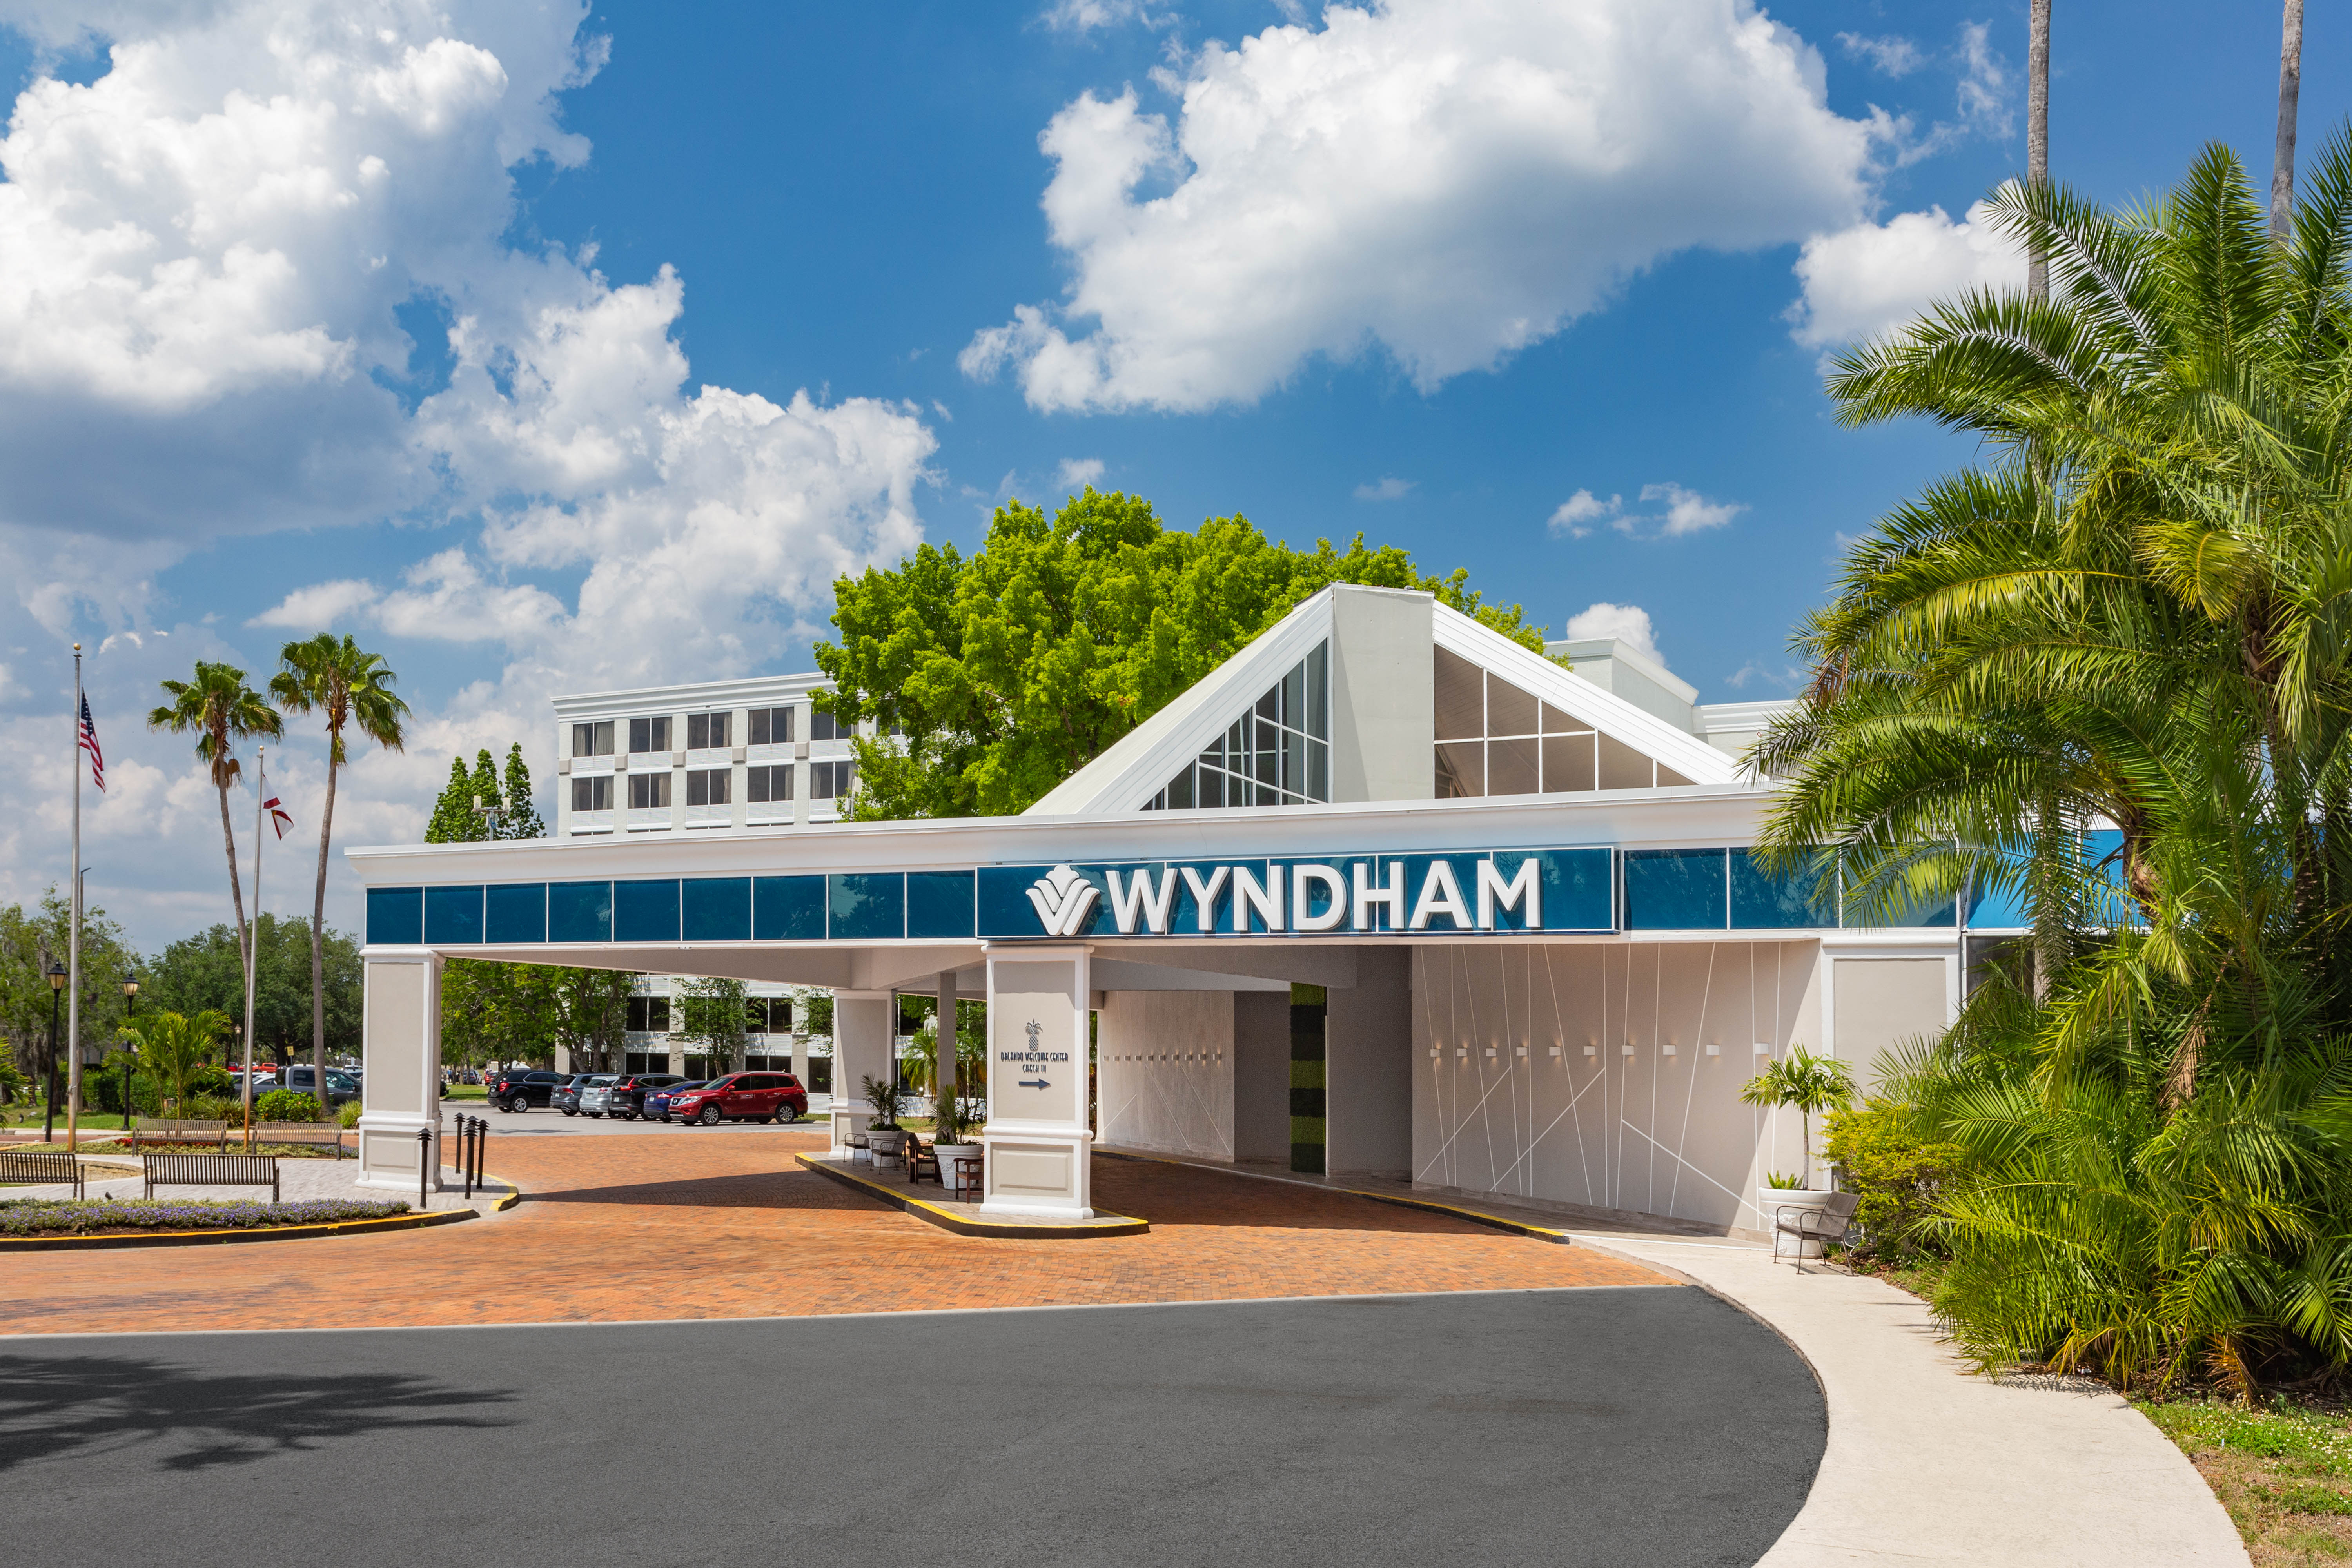 Wyndham Hotel Celebration by Days cerca de Disney World